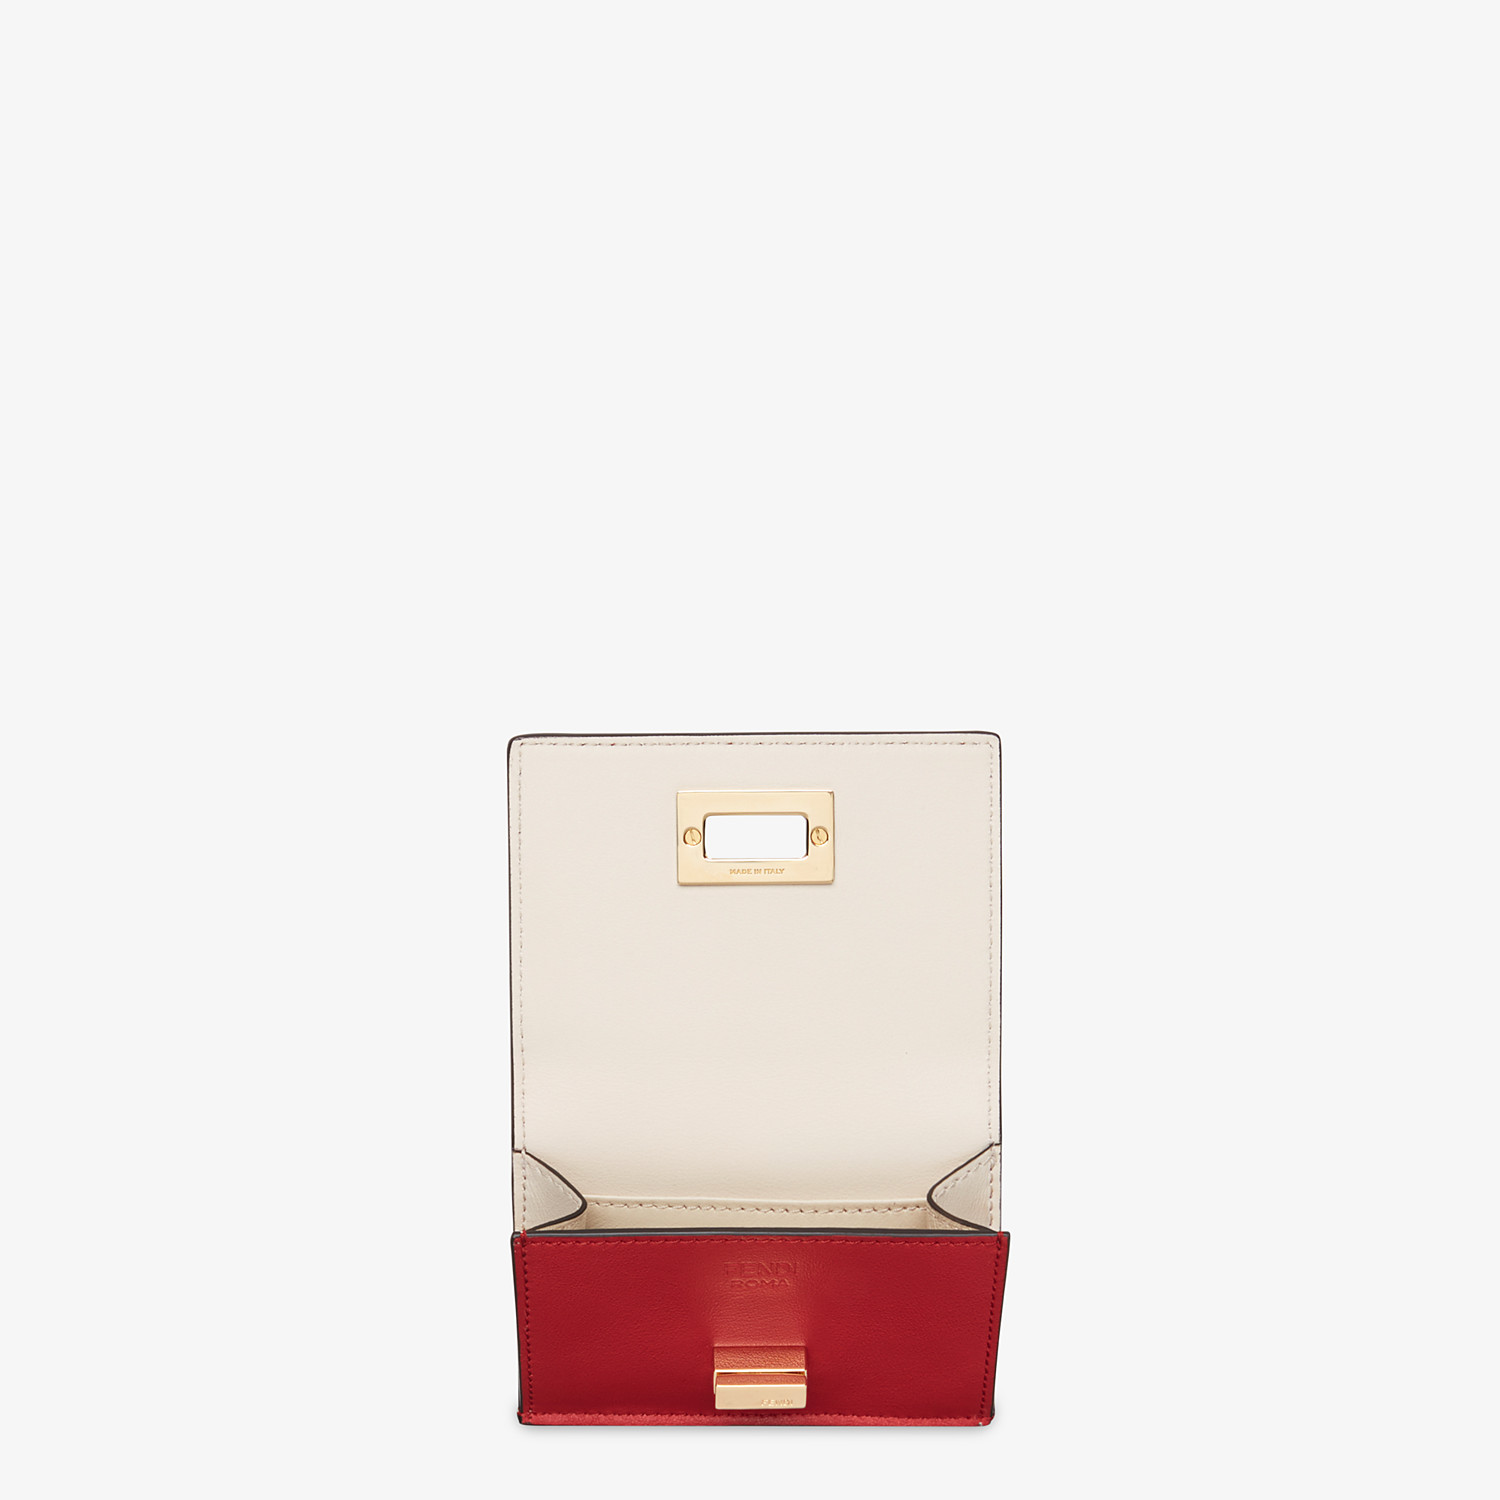 FENDI MICRO TRIFOLD - Red leather wallet - view 3 detail